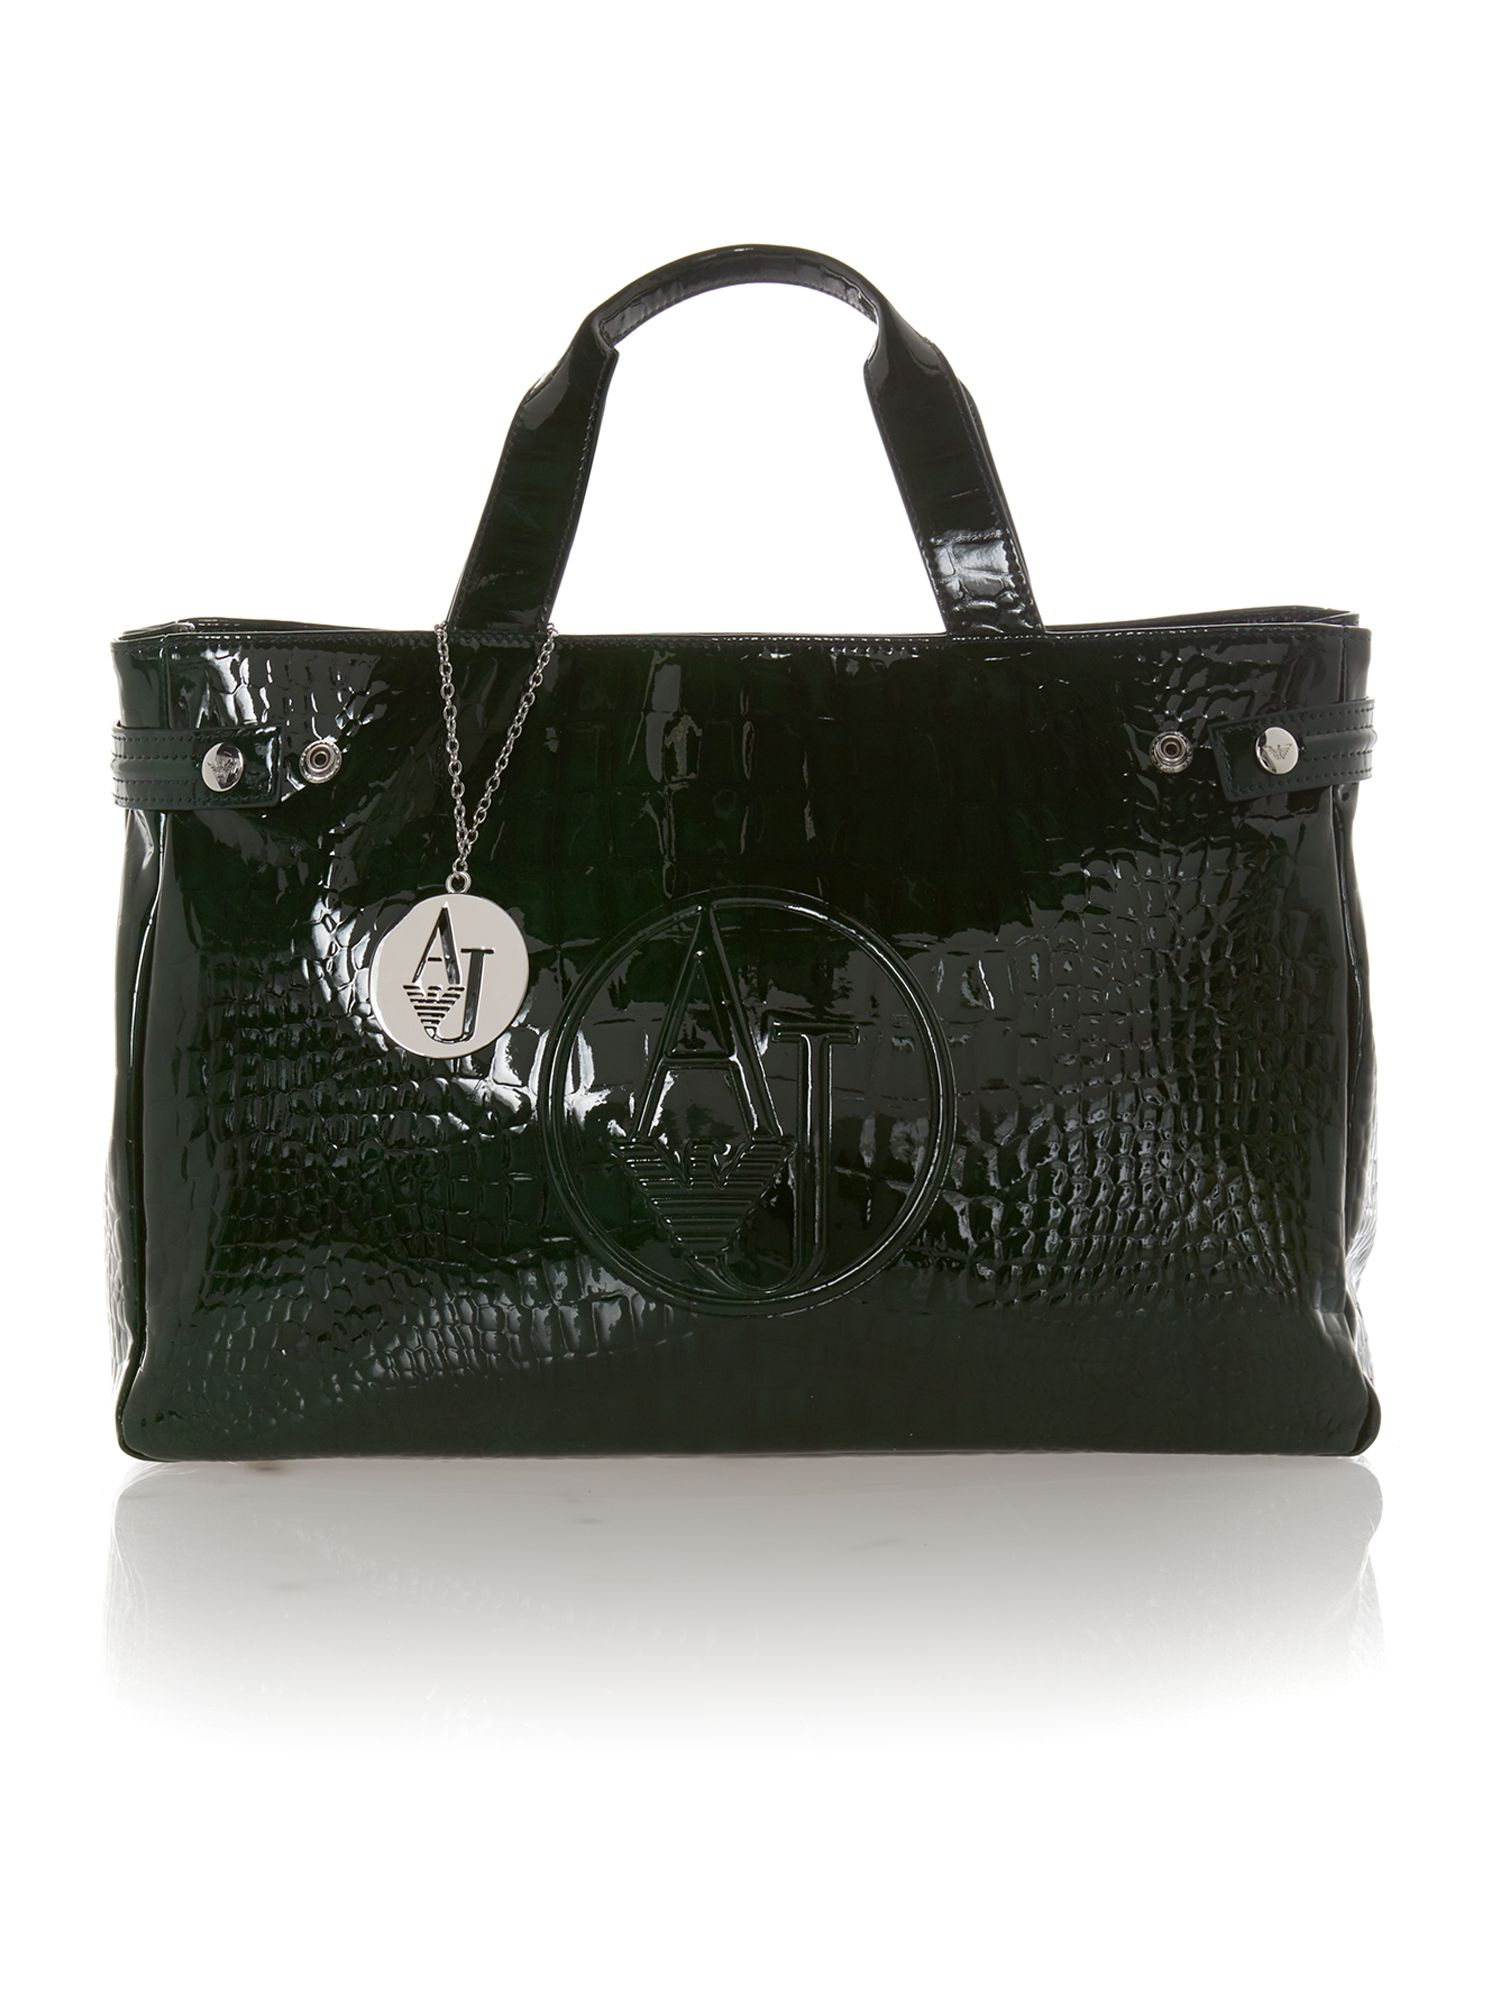 Green medium croc tote bag